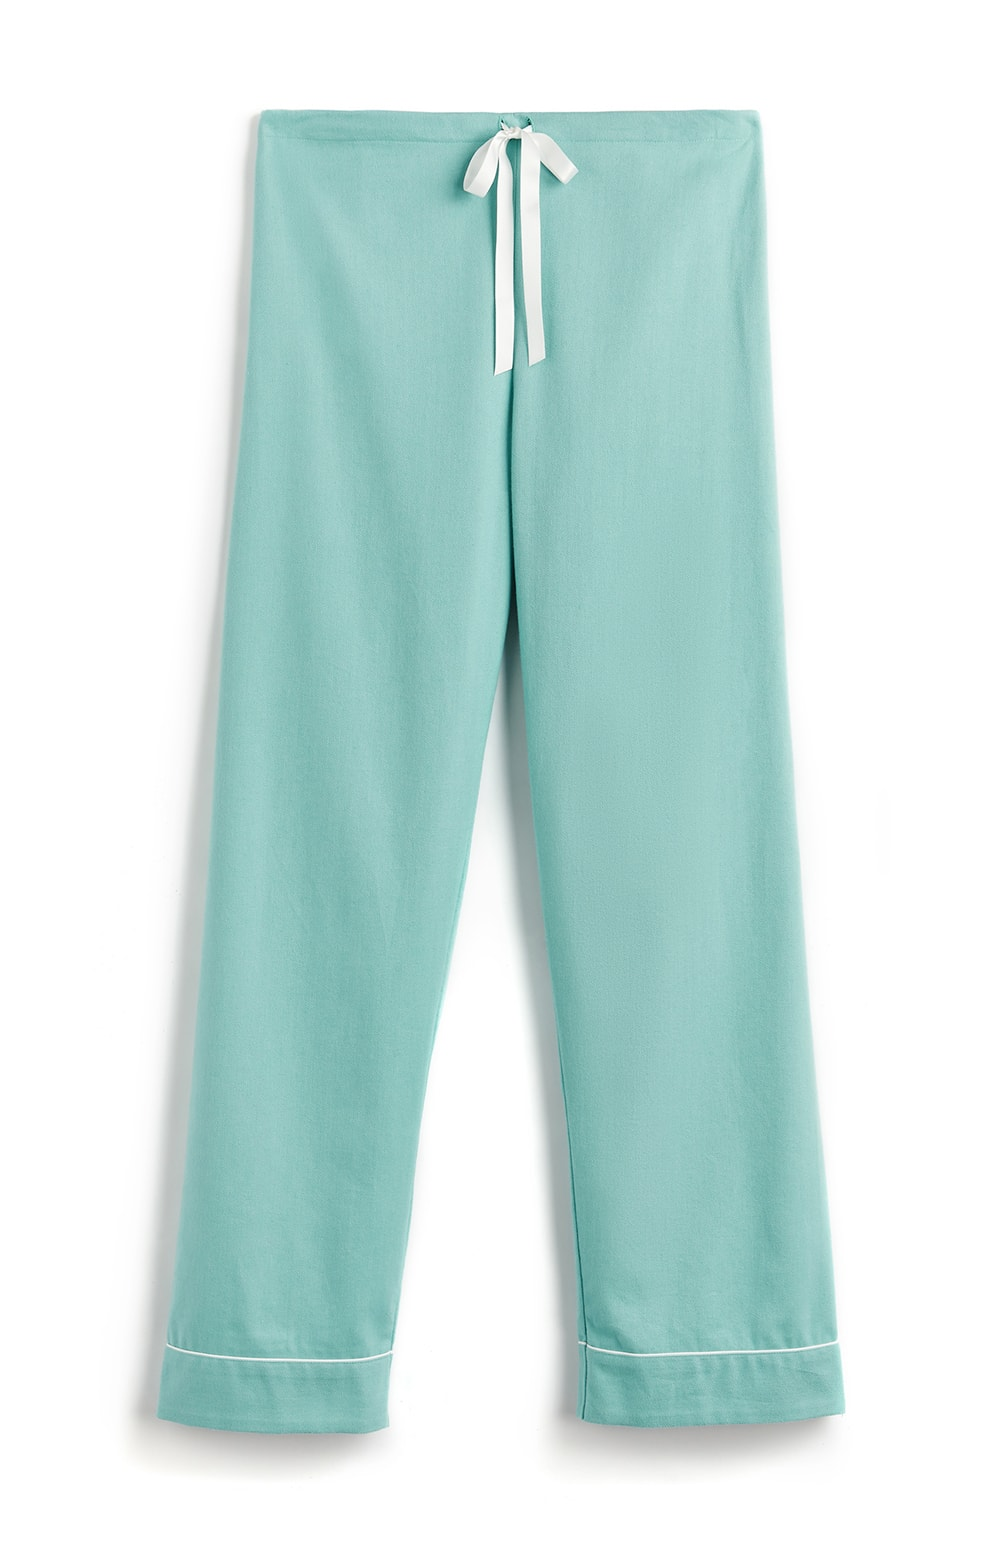 BRUSHED PASTEL PYJAMA TROUSERS - AQUA HERRINGBONE